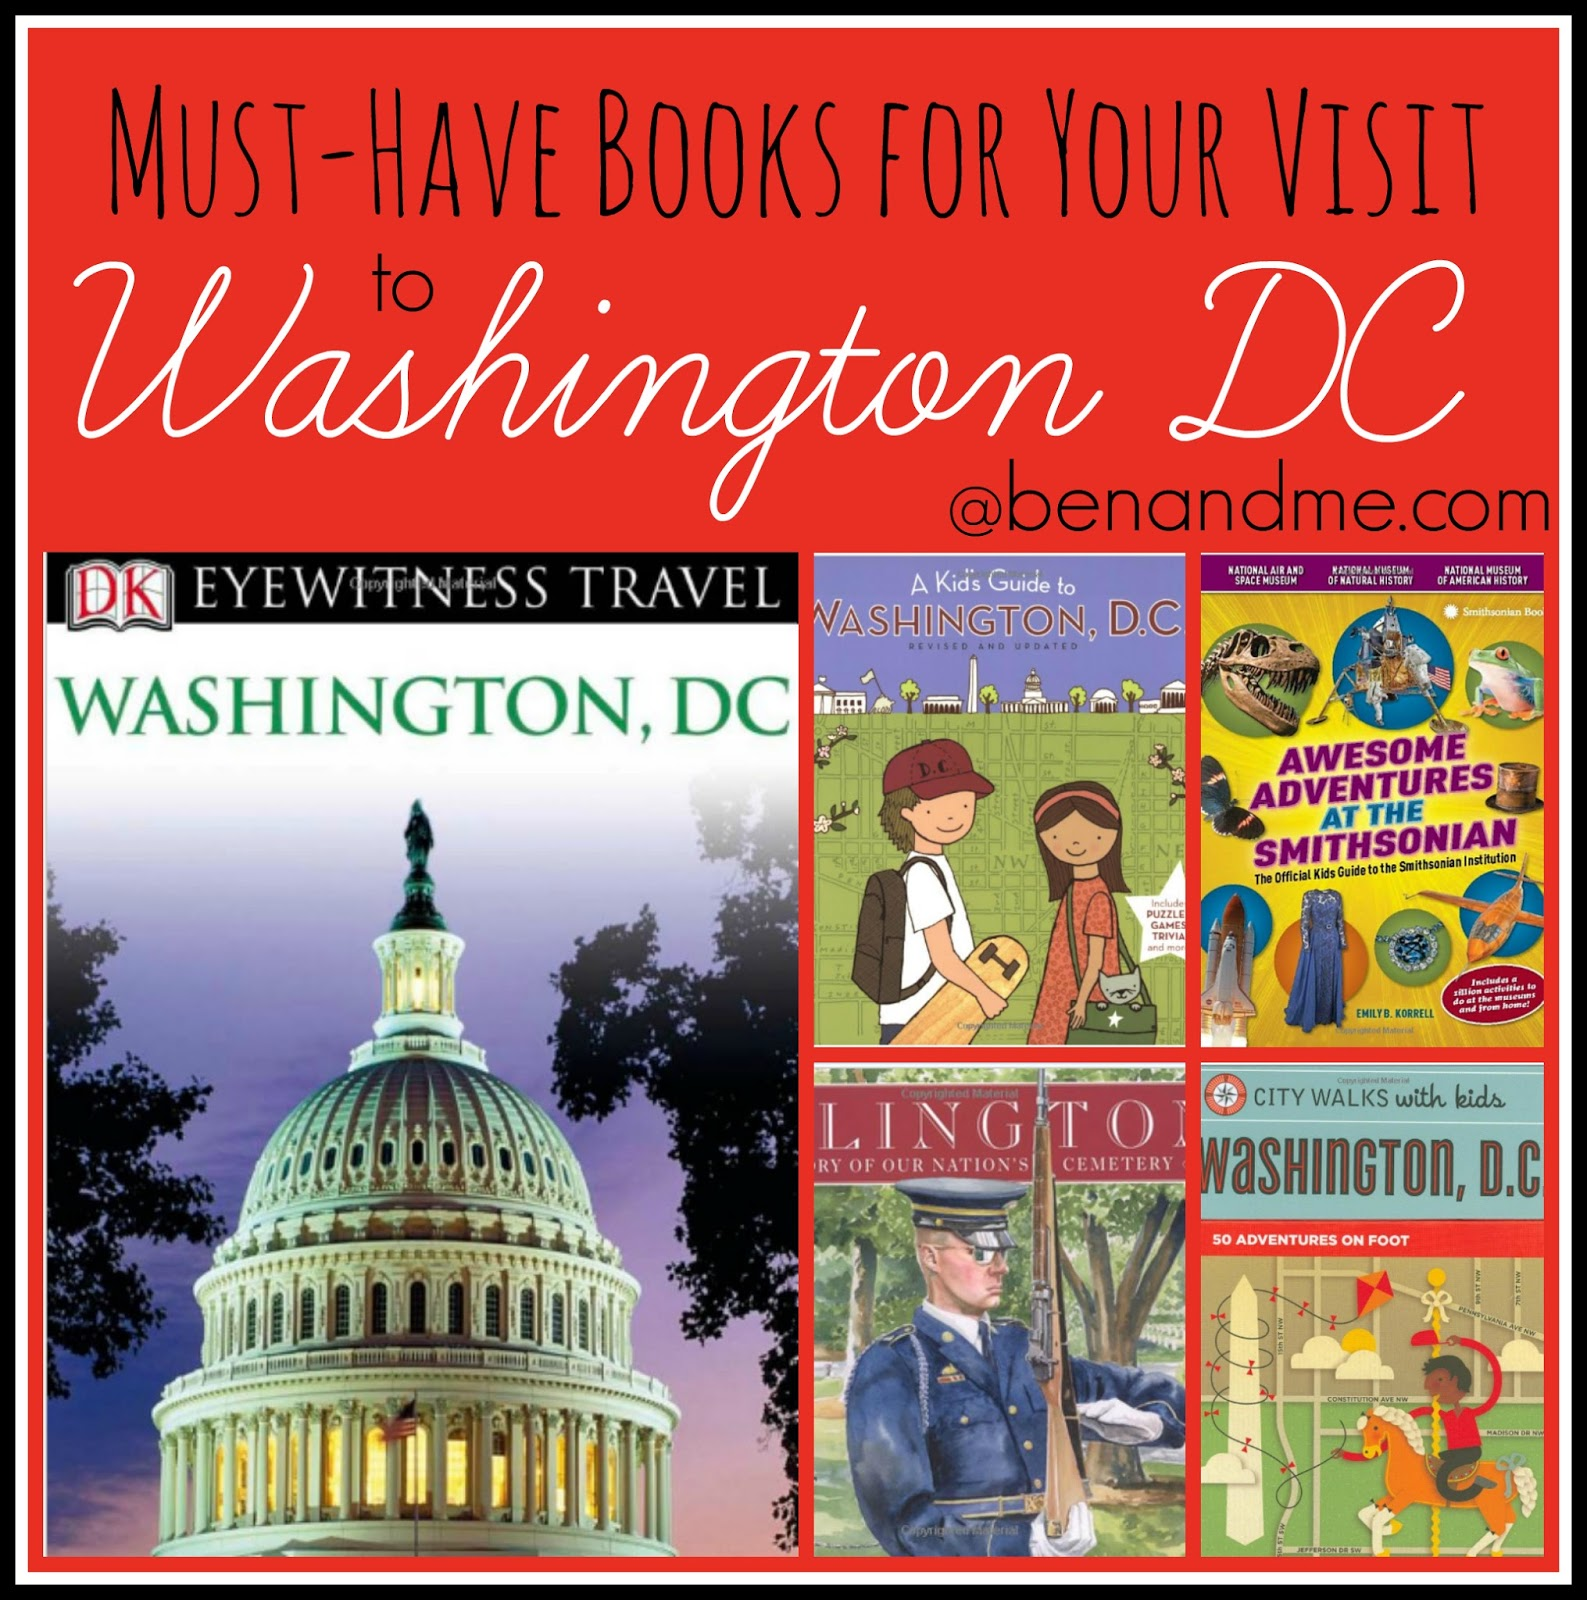 Washington DC a Comprehensive List of Resources to Study or Visit